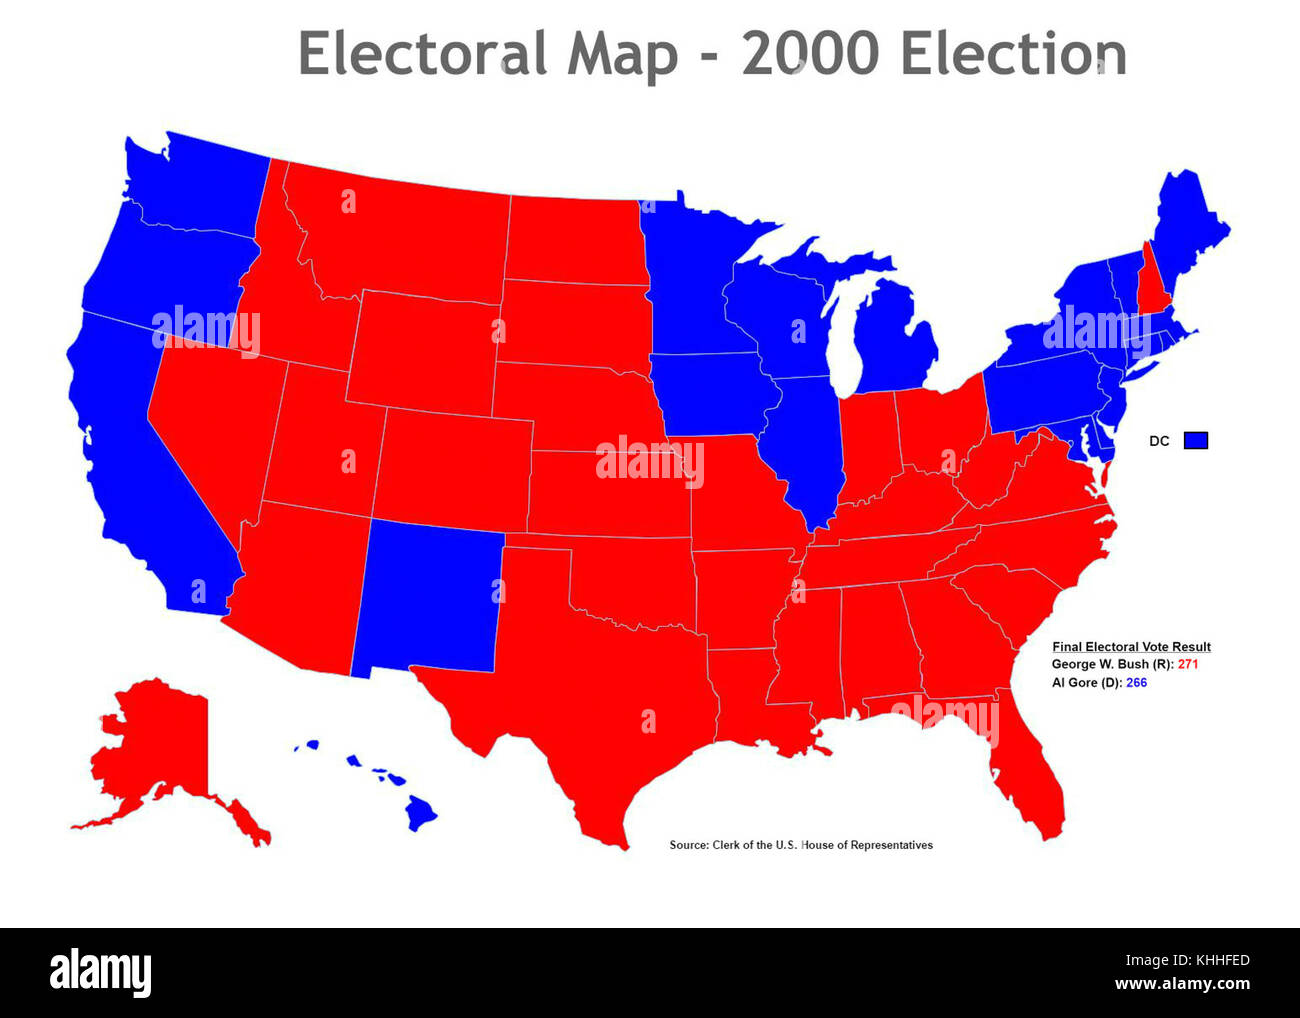 electoral map  united states presidential election wikipedia  - election map google maps navigation